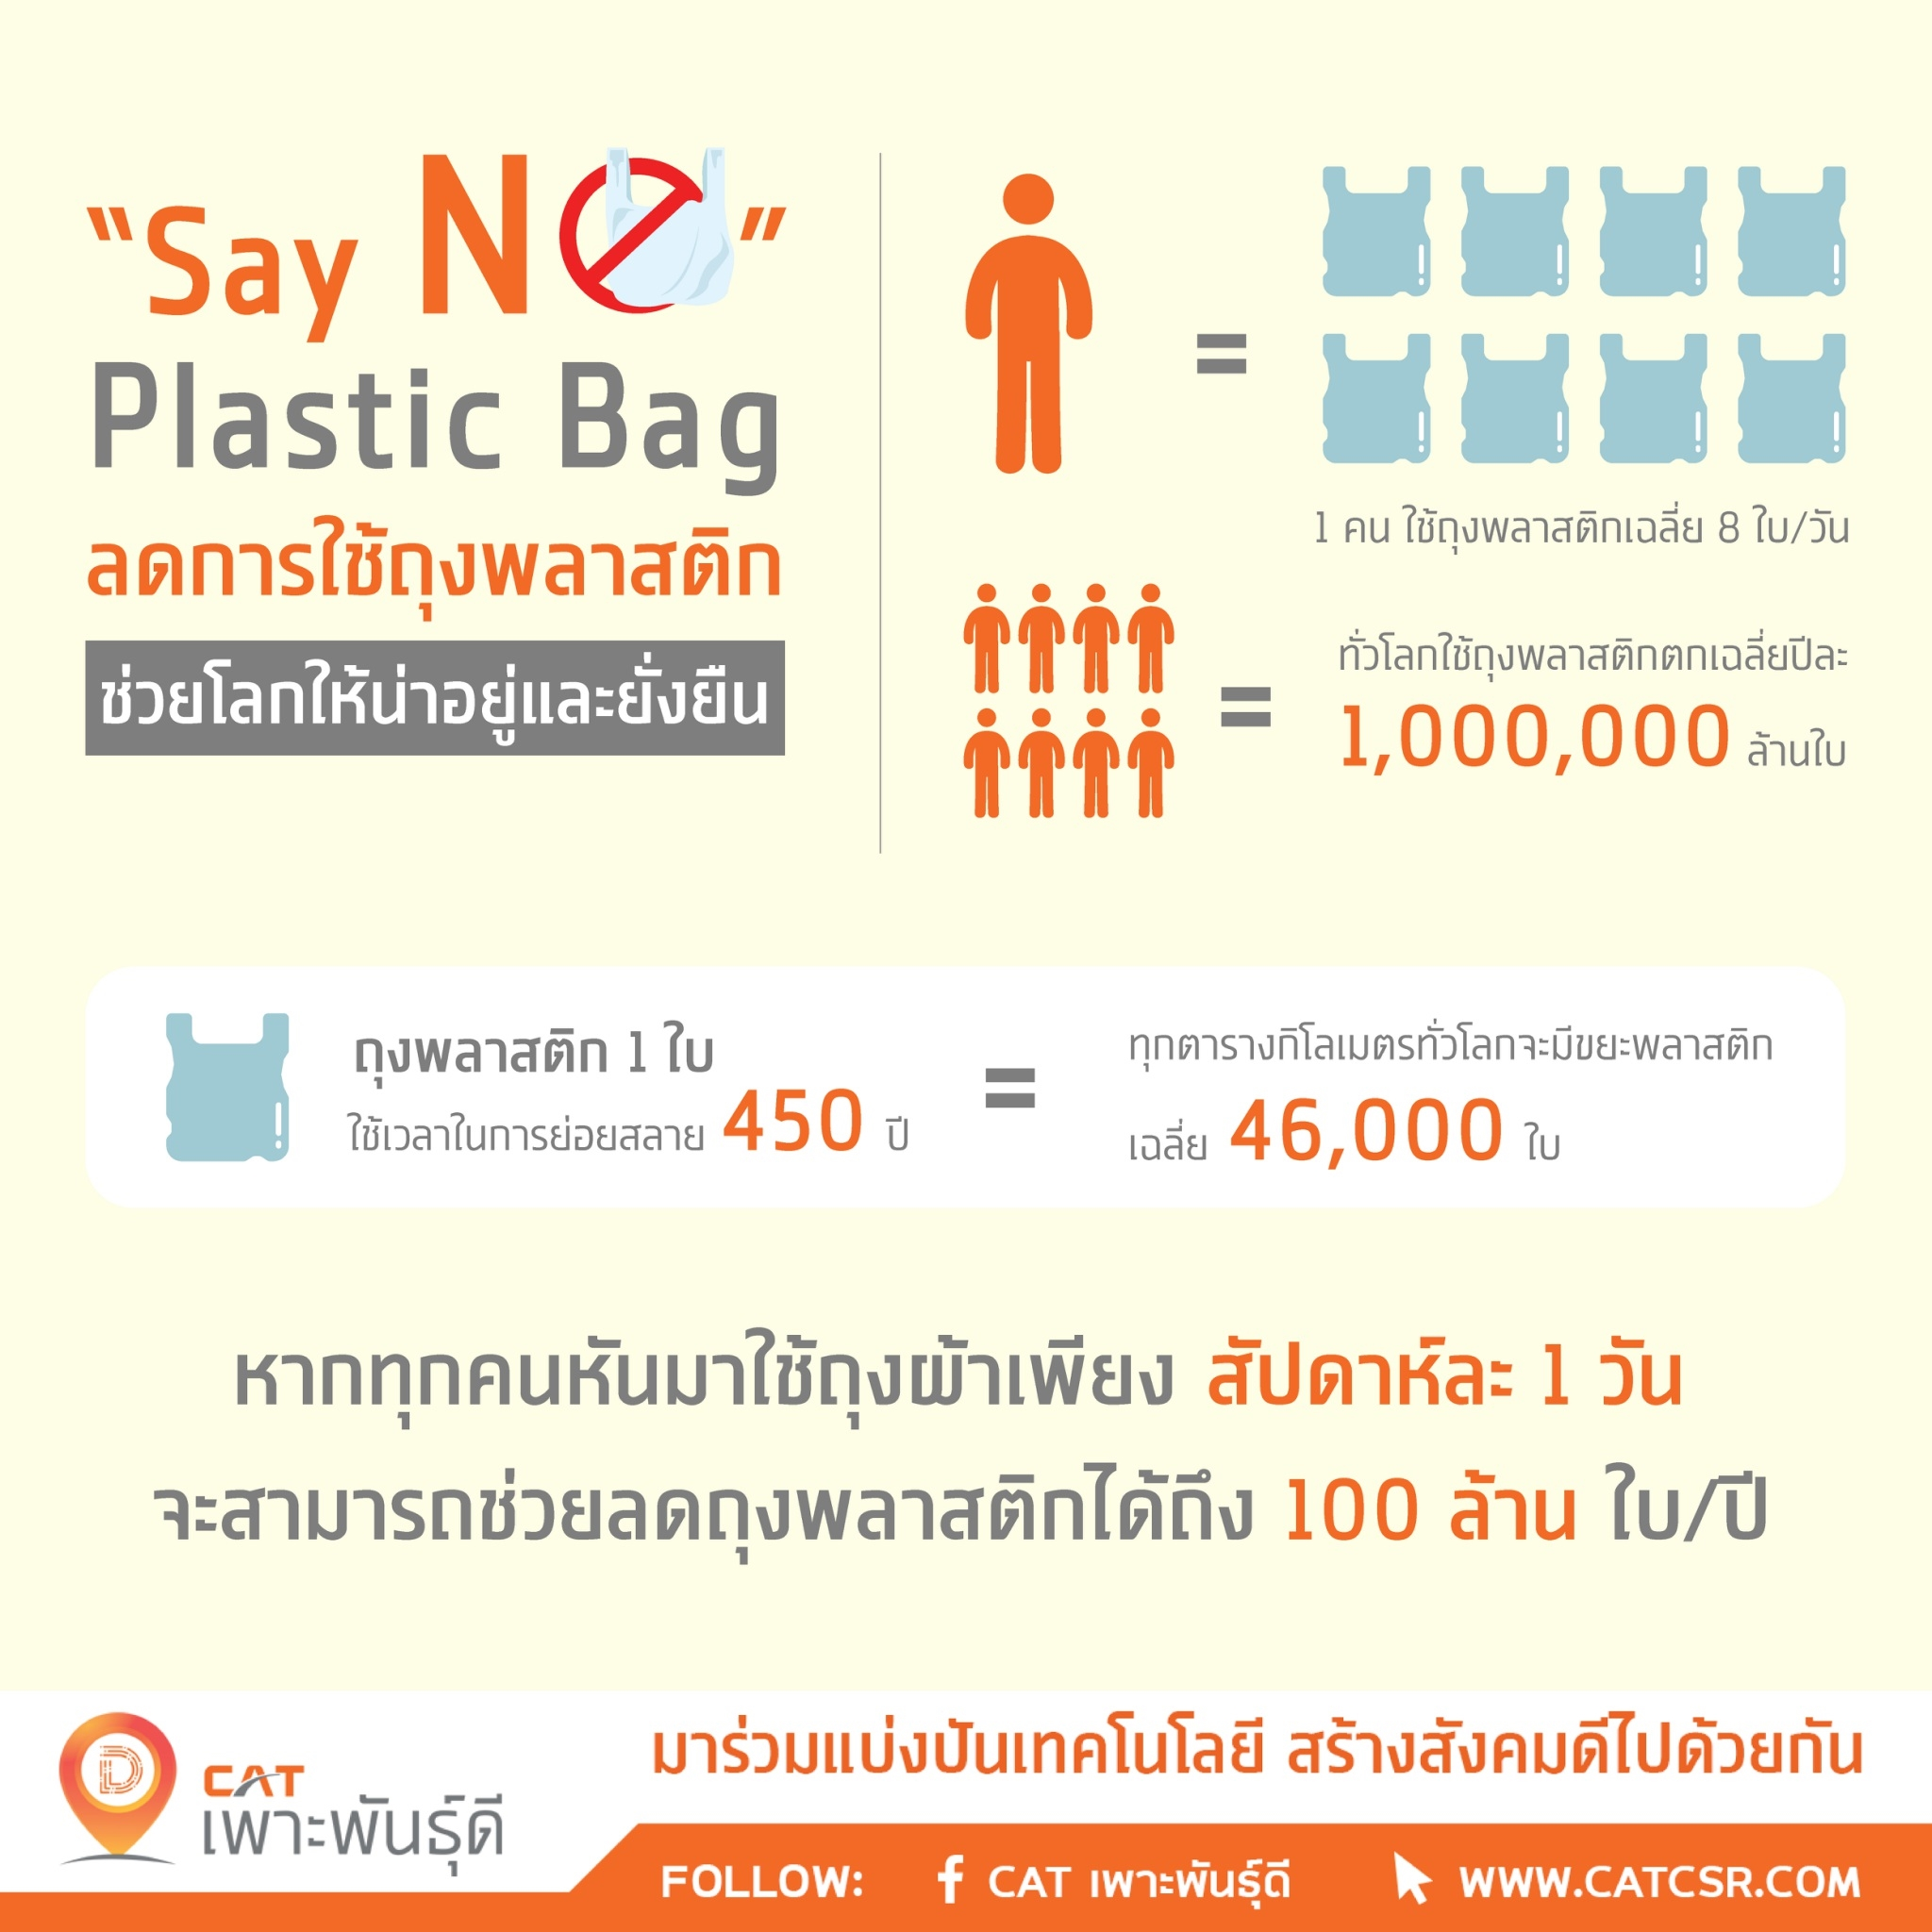 Say No Plastic Bag